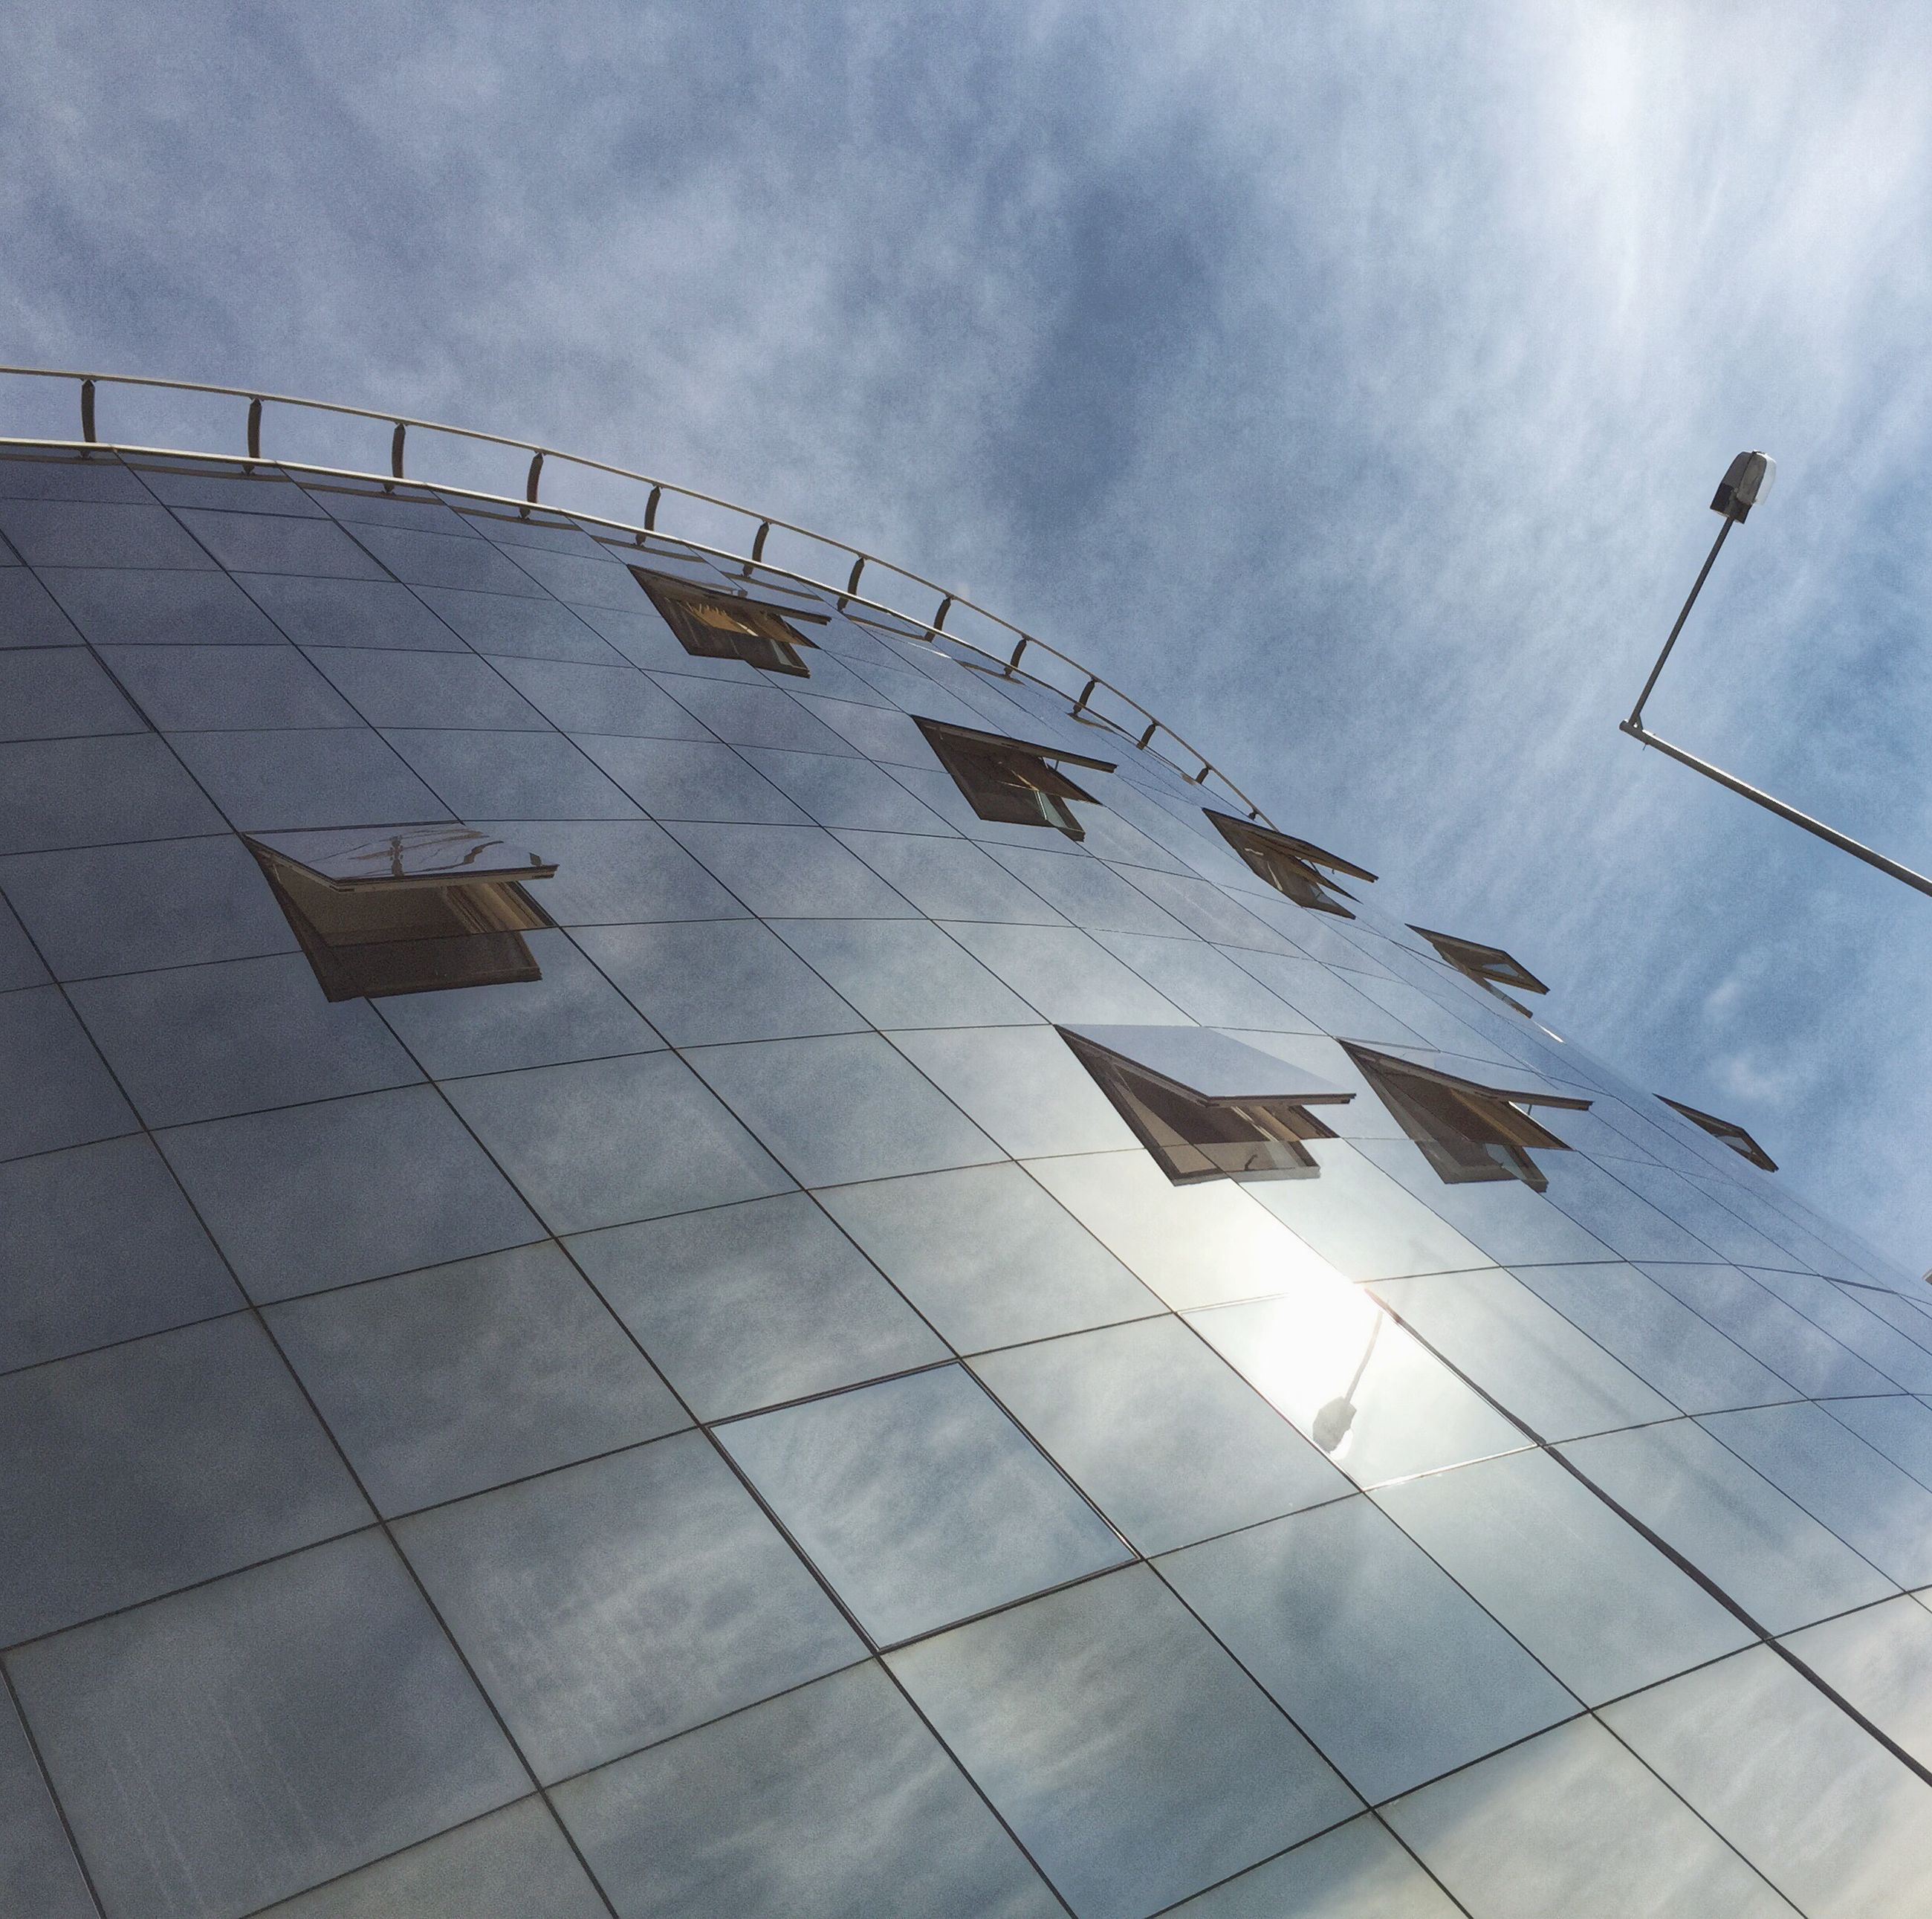 sky, low angle view, built structure, architecture, cloud - sky, flying, building exterior, day, cloudy, bird, outdoors, no people, pattern, art and craft, art, cloud, mid-air, creativity, modern, sunlight